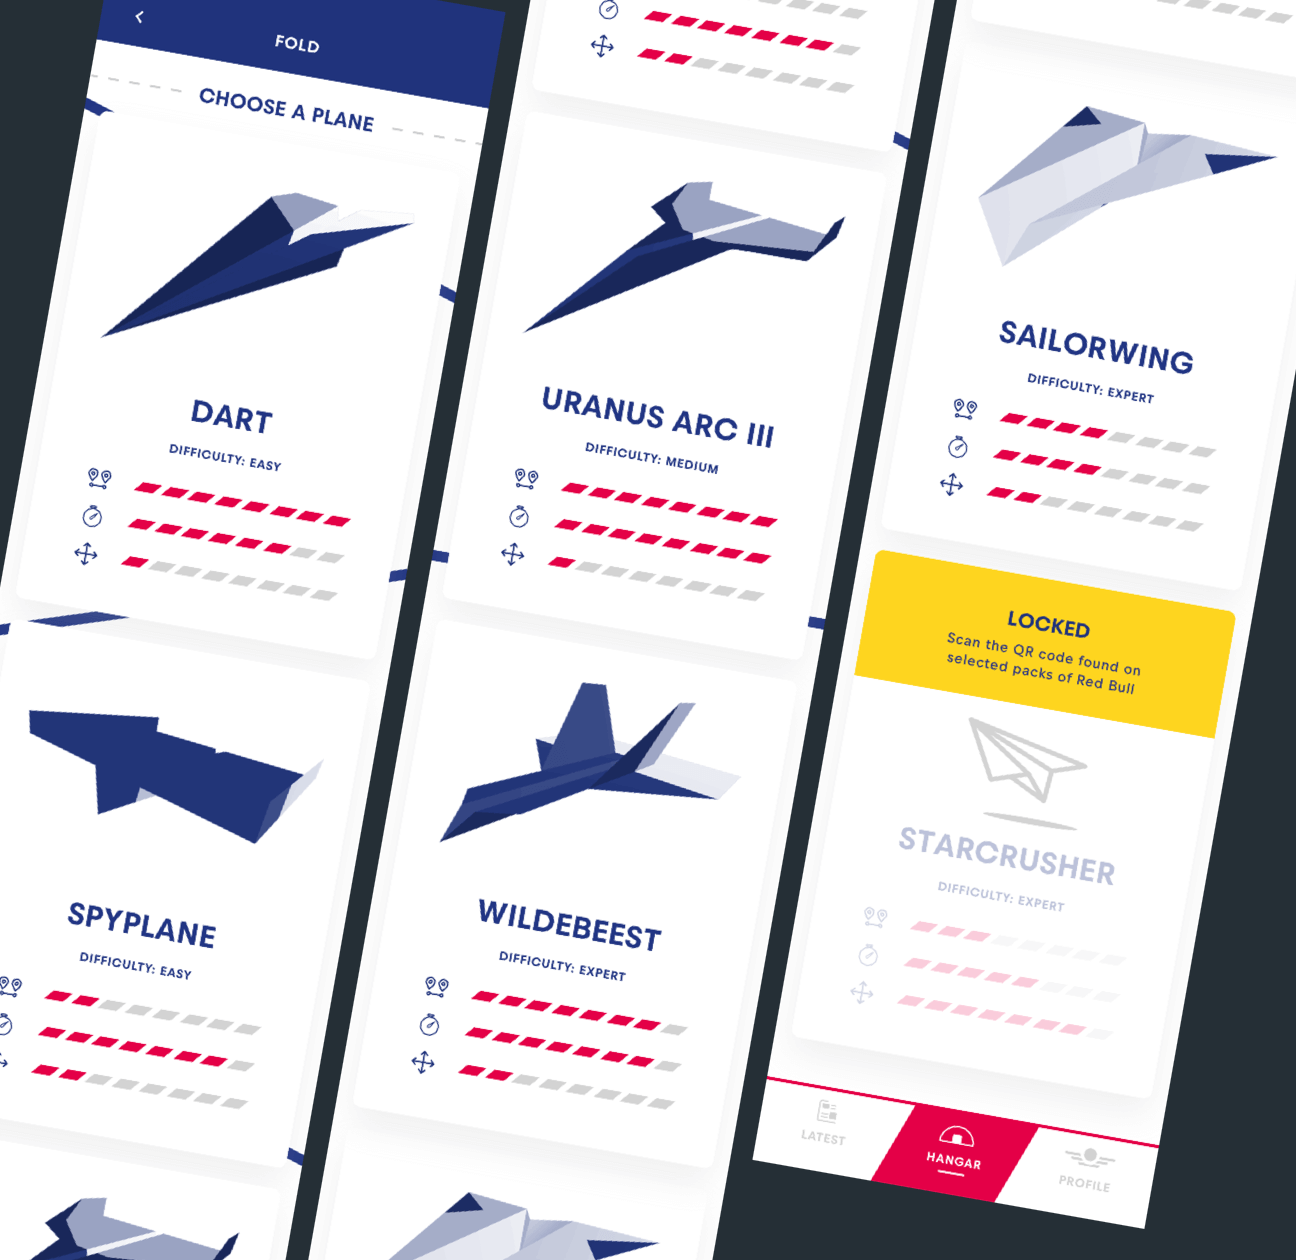 A collection of the planes you can make in the mobile application